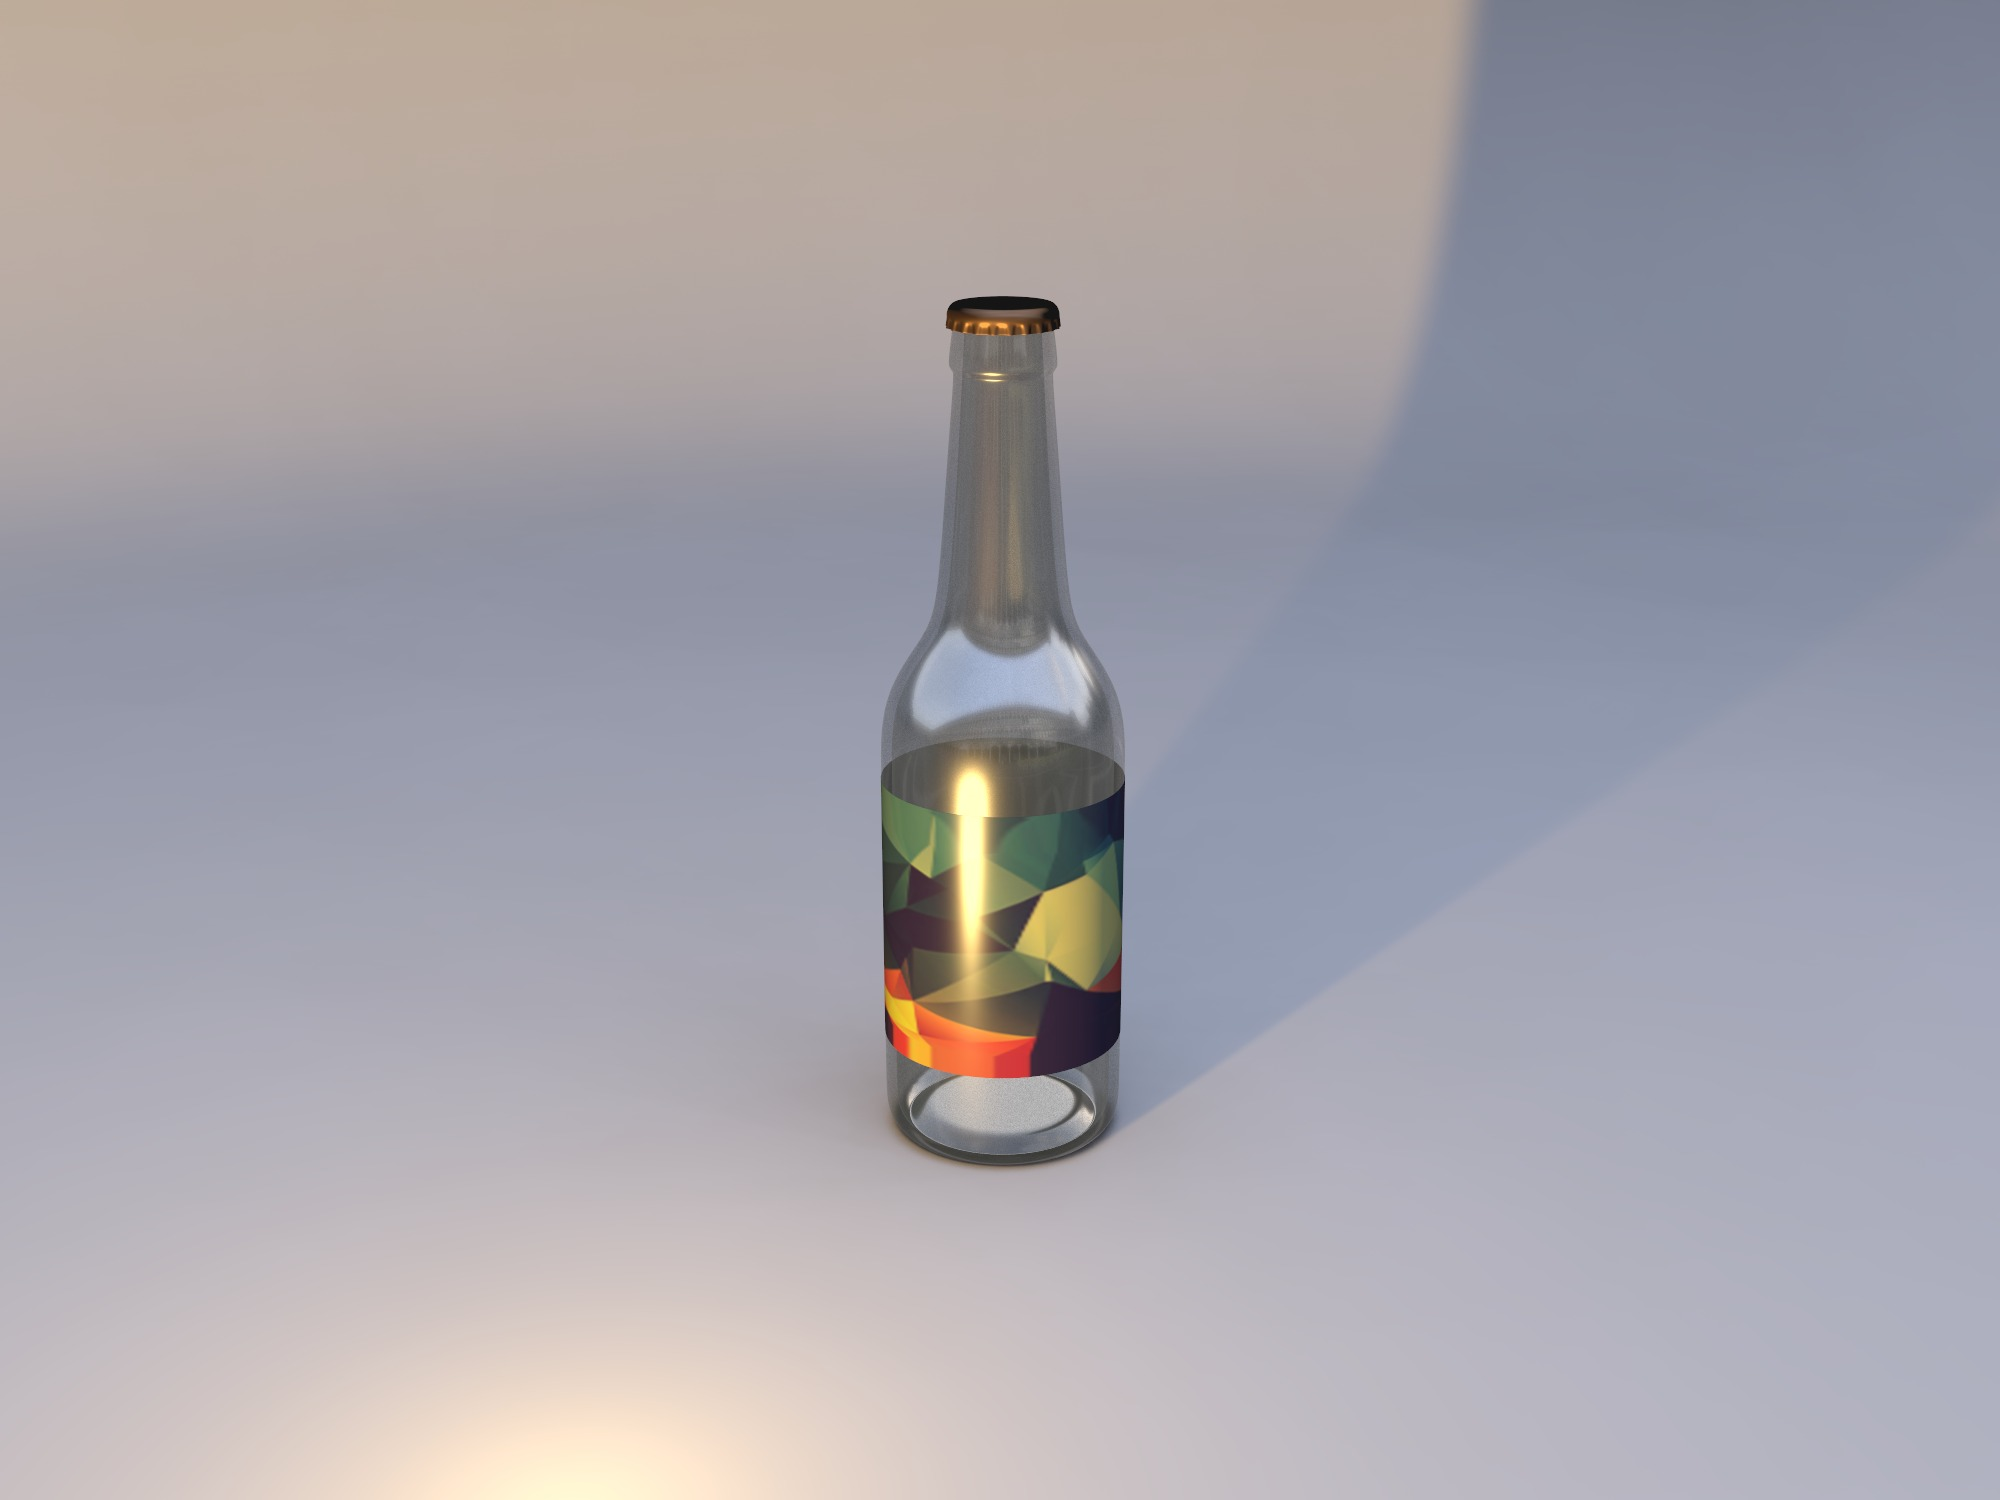 Textured Bottle and Etiquette - 3D design by Andy Klement on Sep 18, 2018